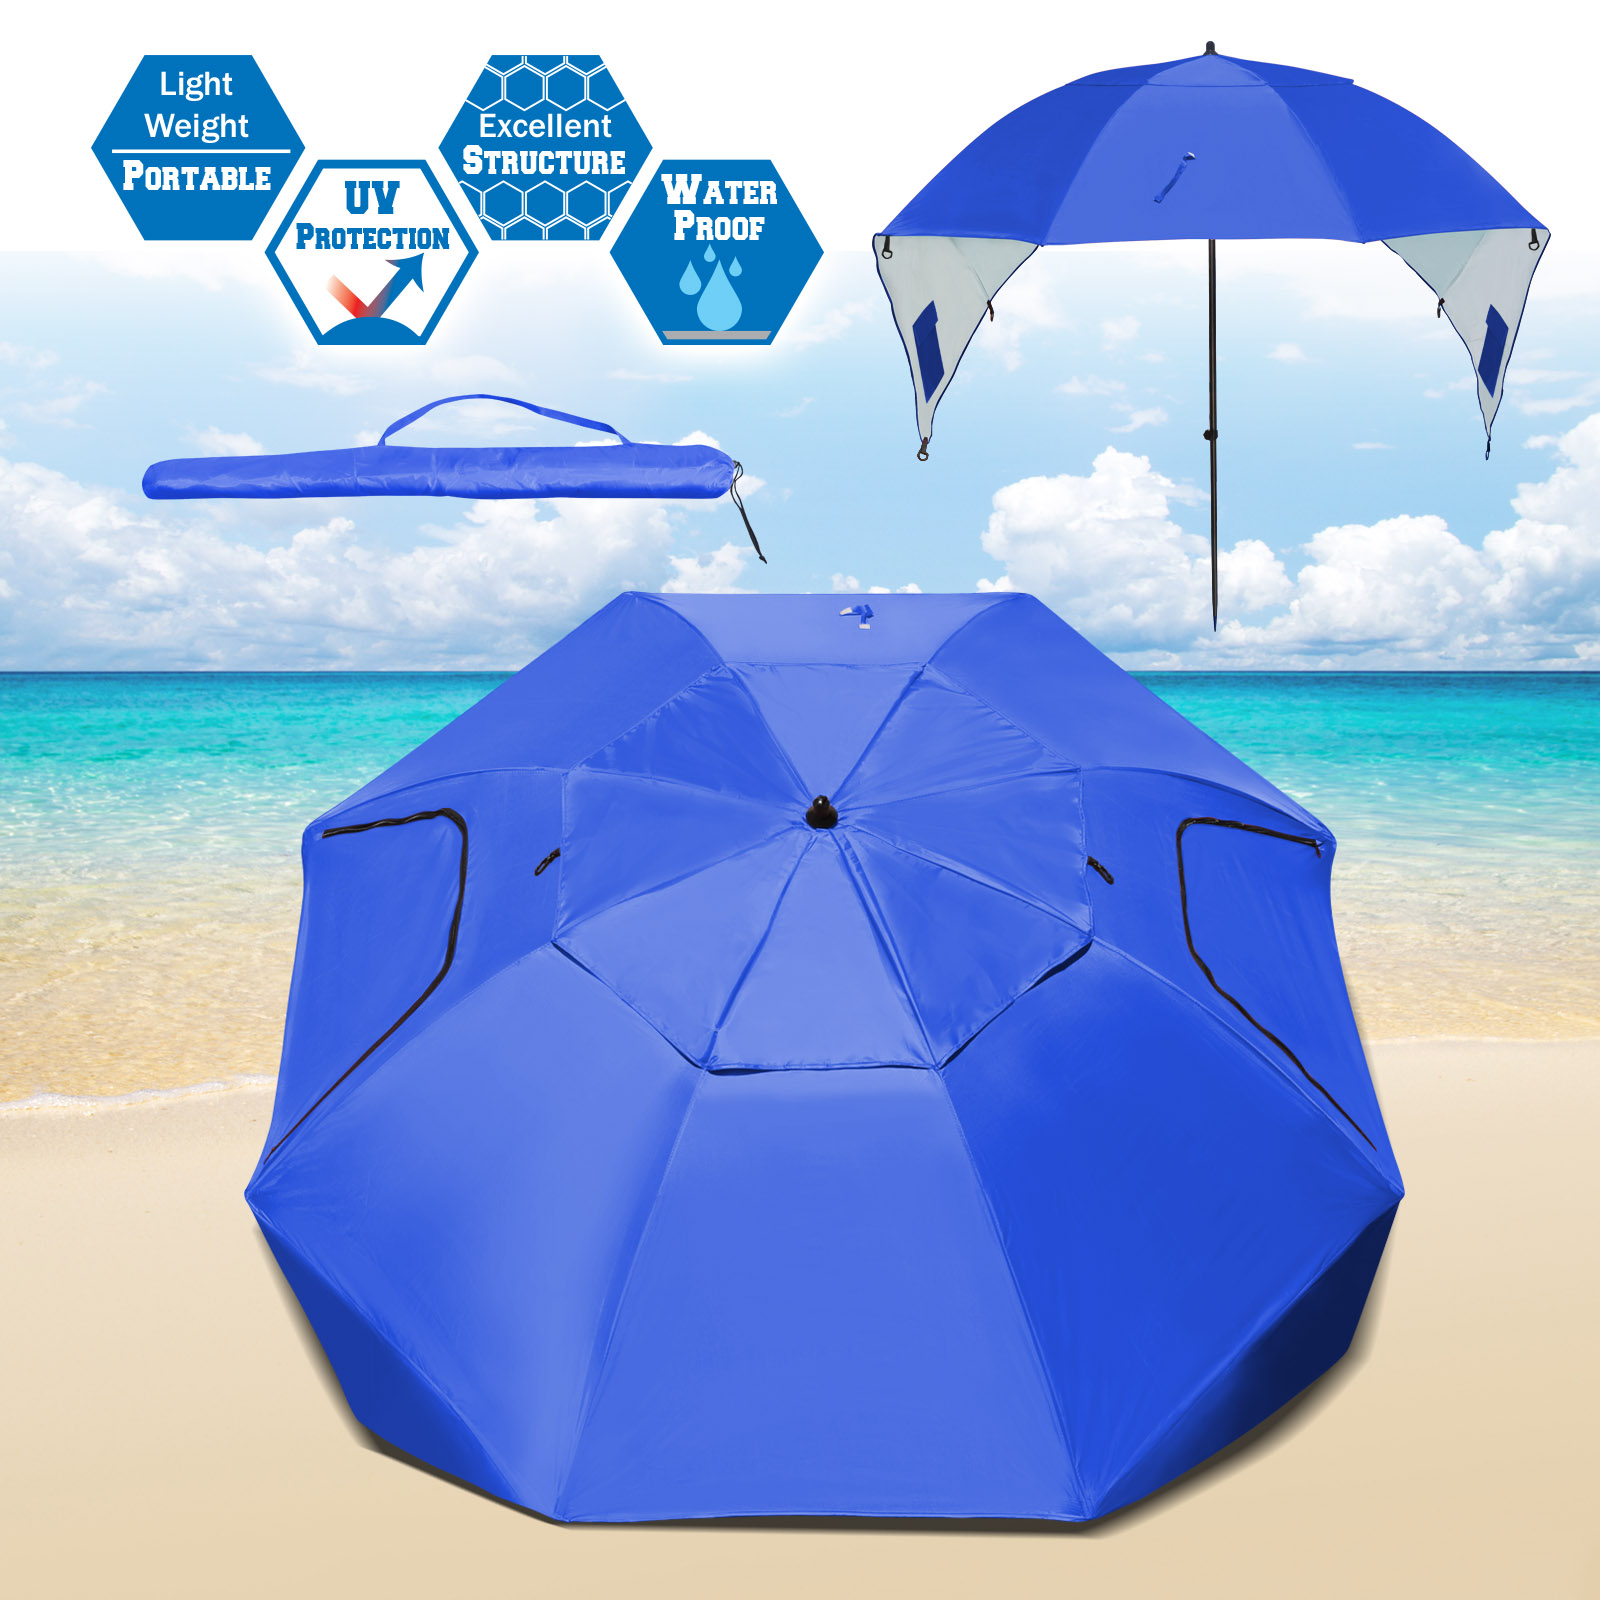 Strong Camel Portable Sun and Weather umbrella Shelter Sport or Beach Canopy Tent 8 Foot Canopy-Blue color